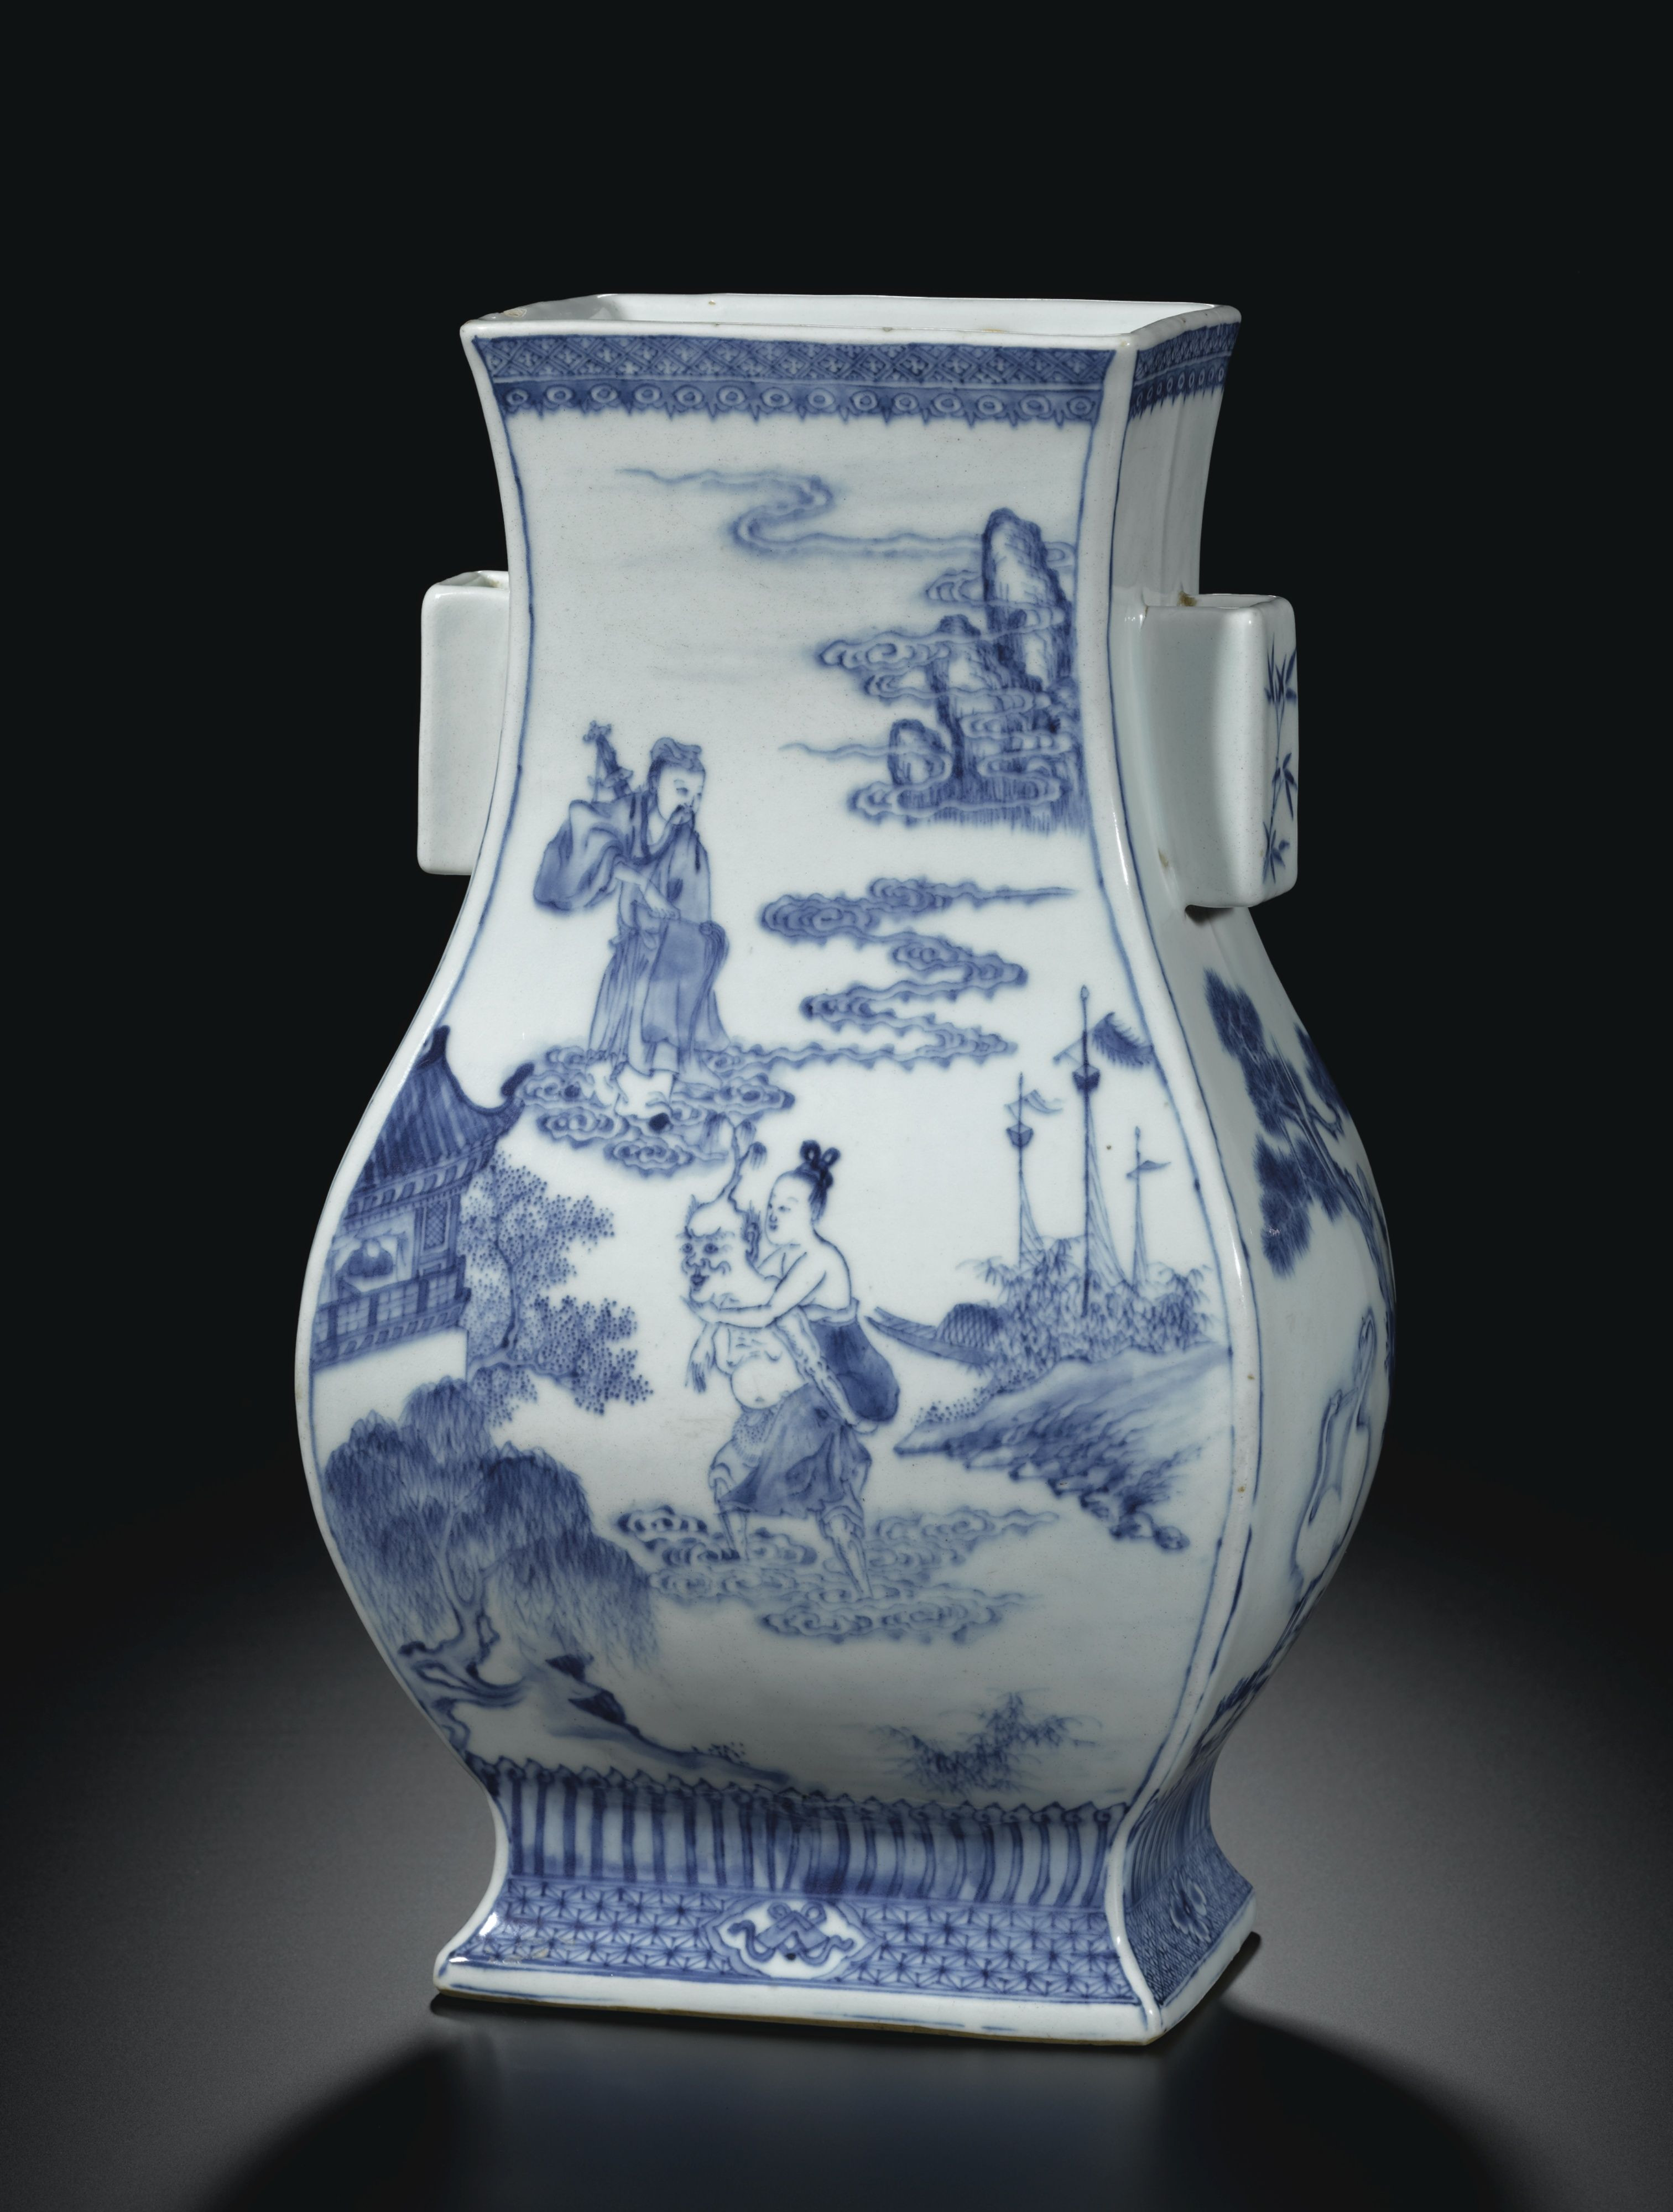 chinese blue white vase of vase sothebys i property from a private collection a blue and pertaining to vase sothebys i property from a private collection a blue and white immortals handled vase fanghu qing dynasty 18th century estimate 300000